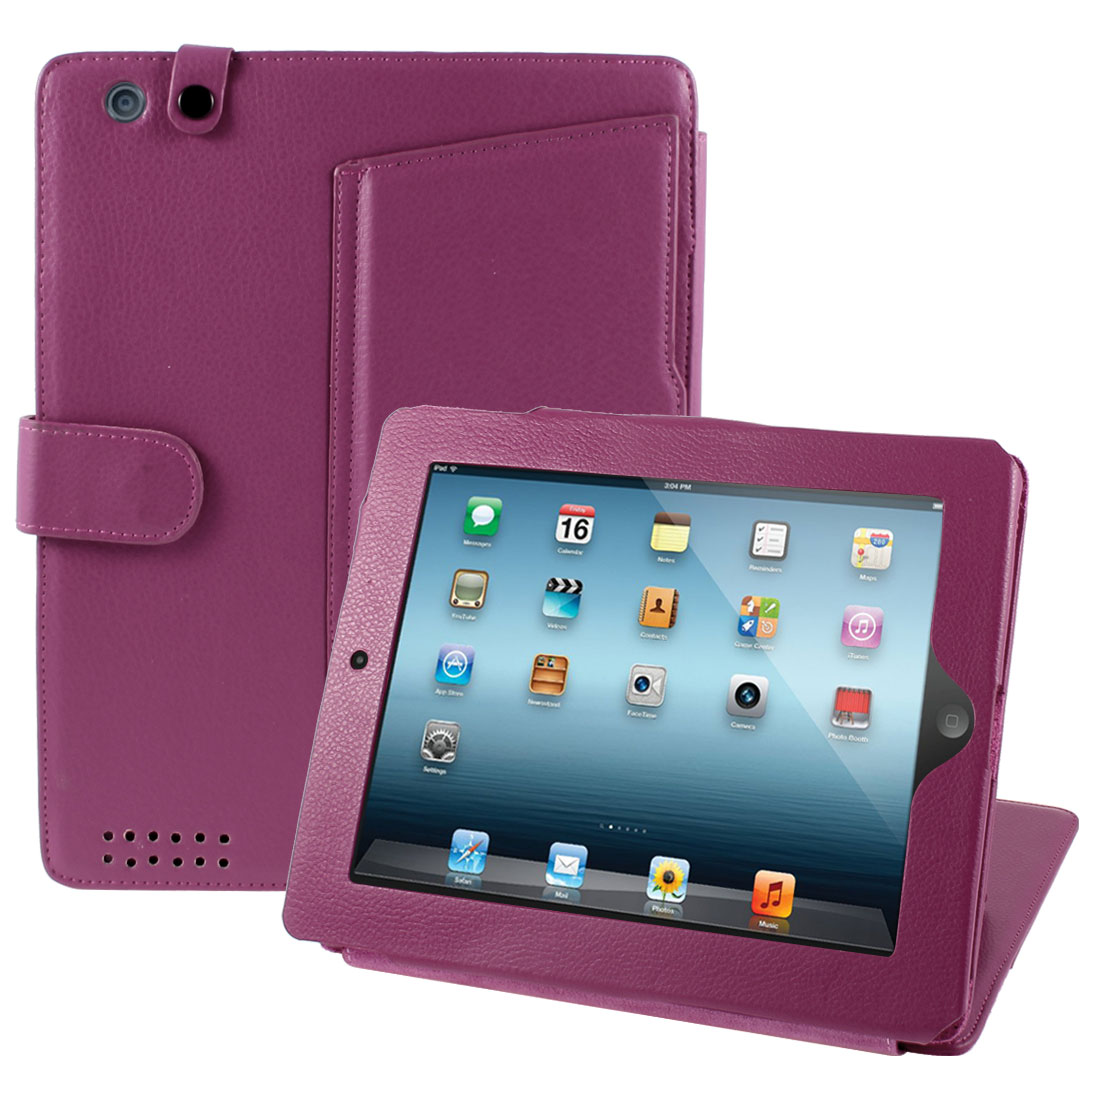 Faux Leather Folio Flip Case Cover Amaranth for Apple iPad 2 2nd